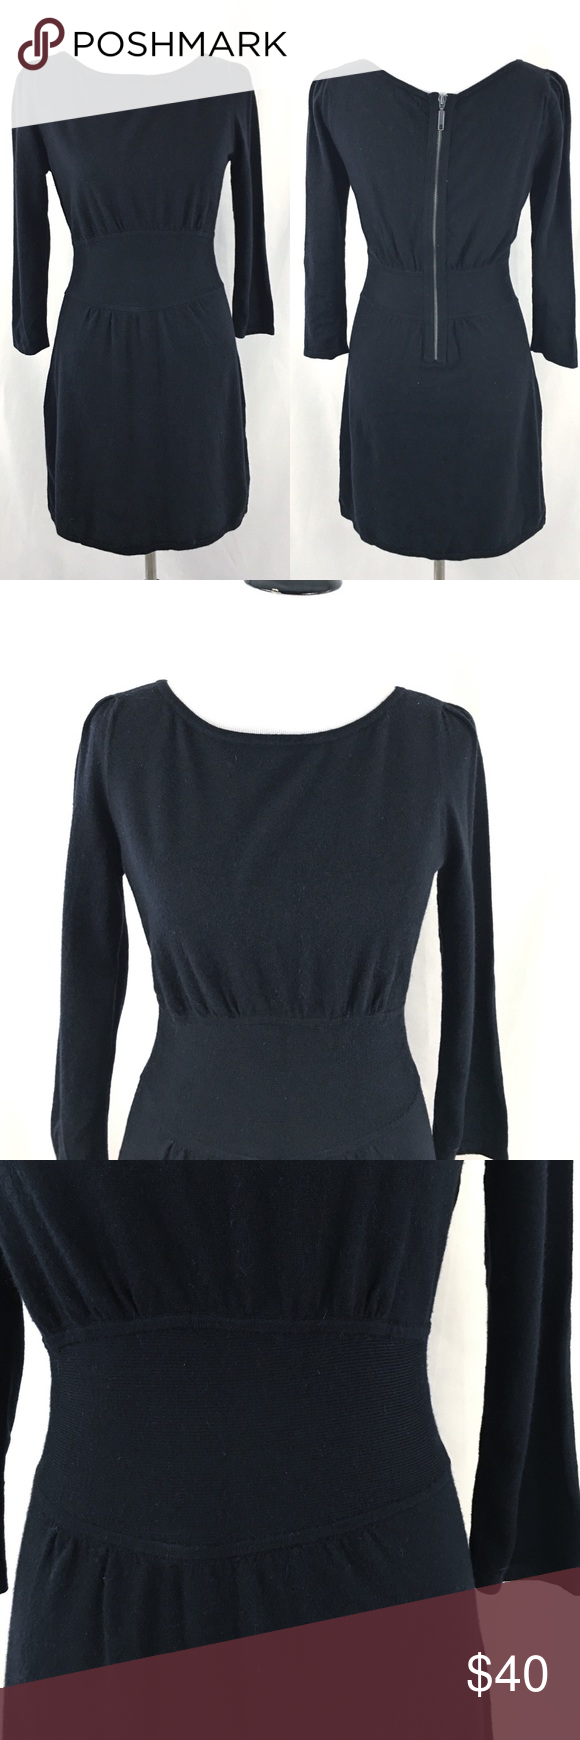 Nwt express black long sleeve mini dress zipper